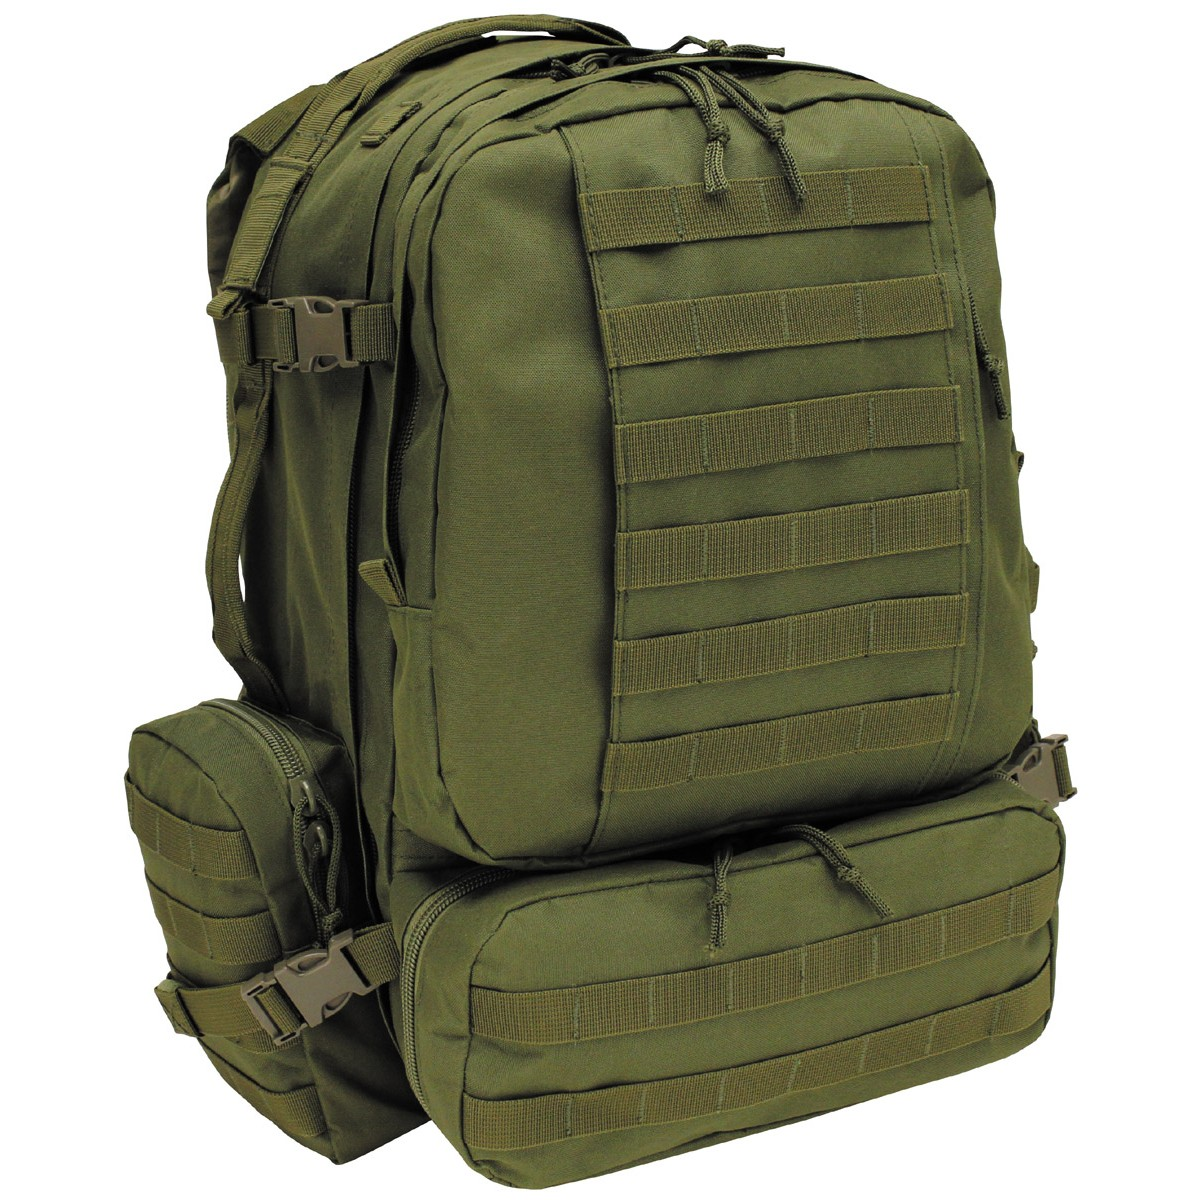 MFH Defense® Military Outdoor Backpack Bag Tactical Modular 46L - OD Green